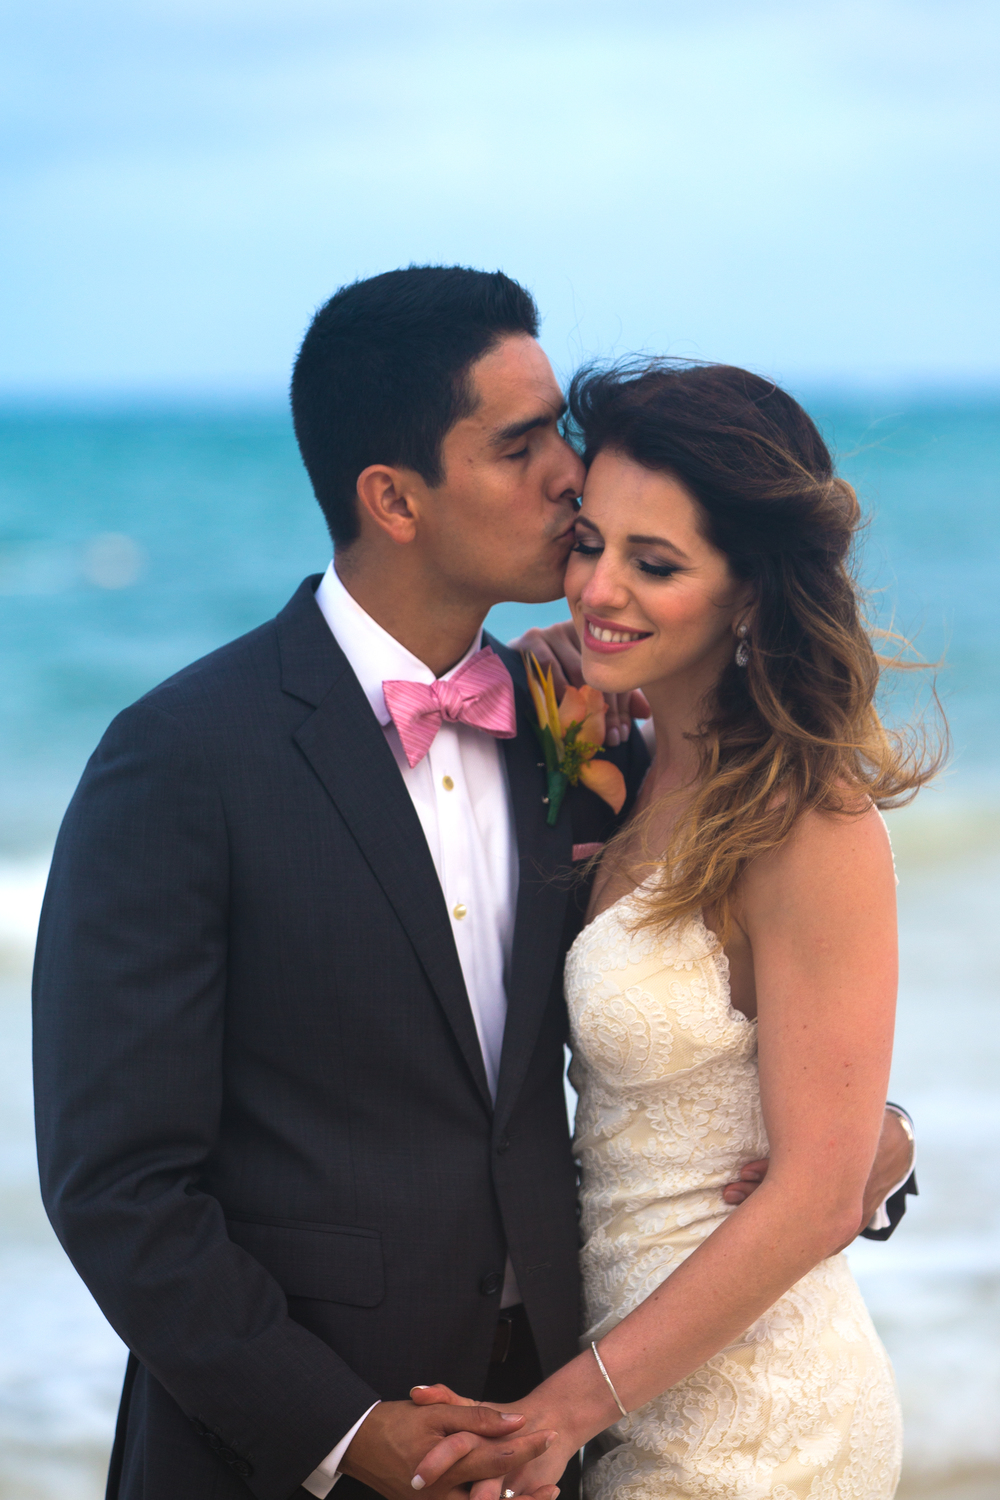 DIEGO & GINA PERILLA: WEDDING DAY